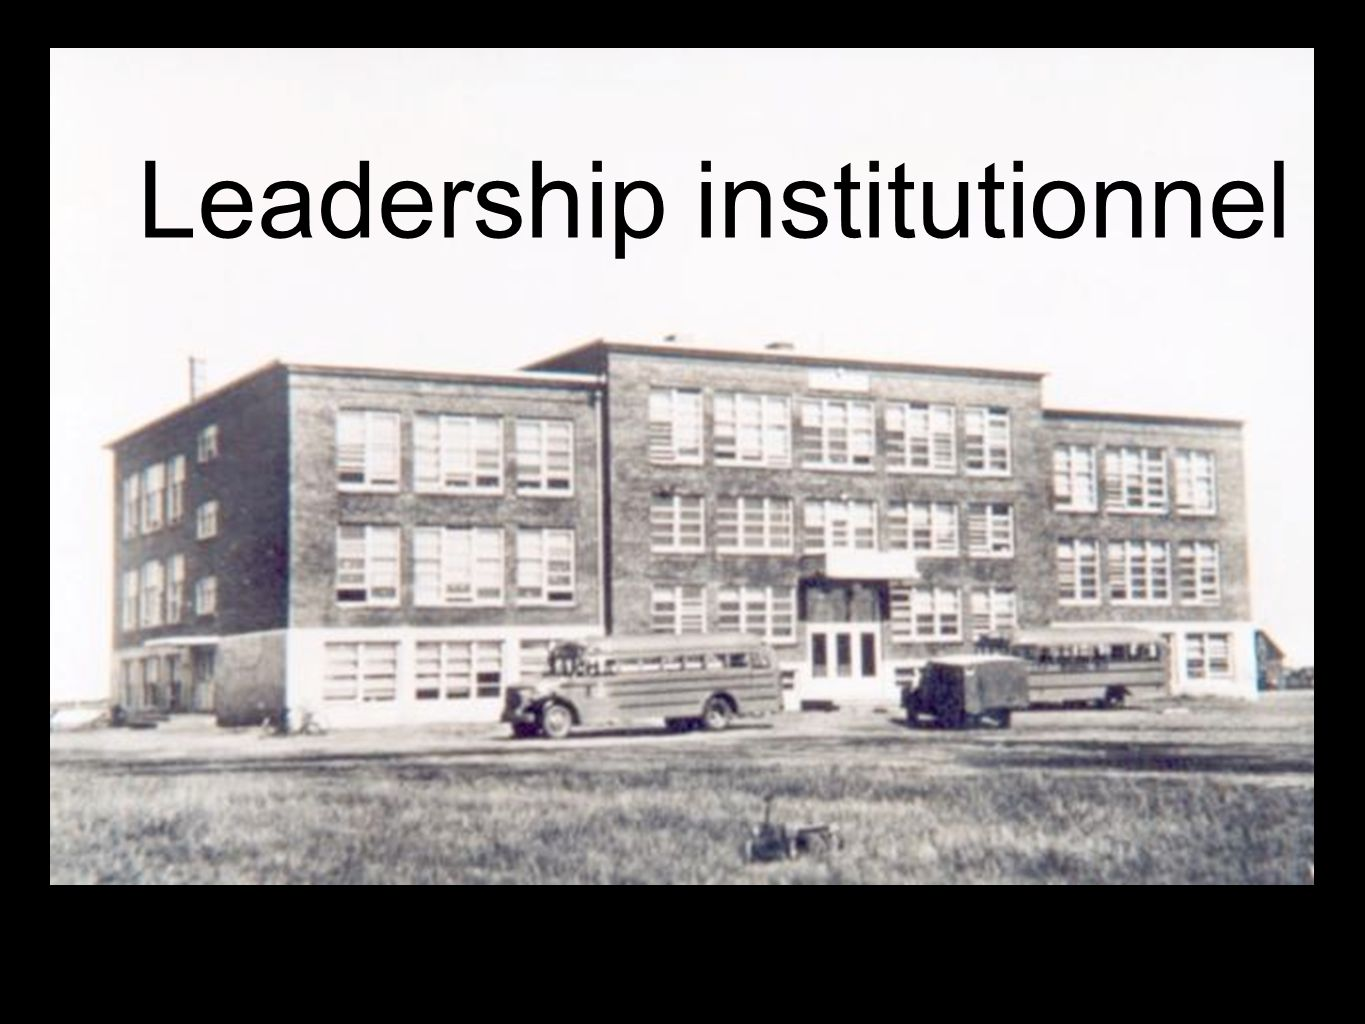 Leadership institutionnel